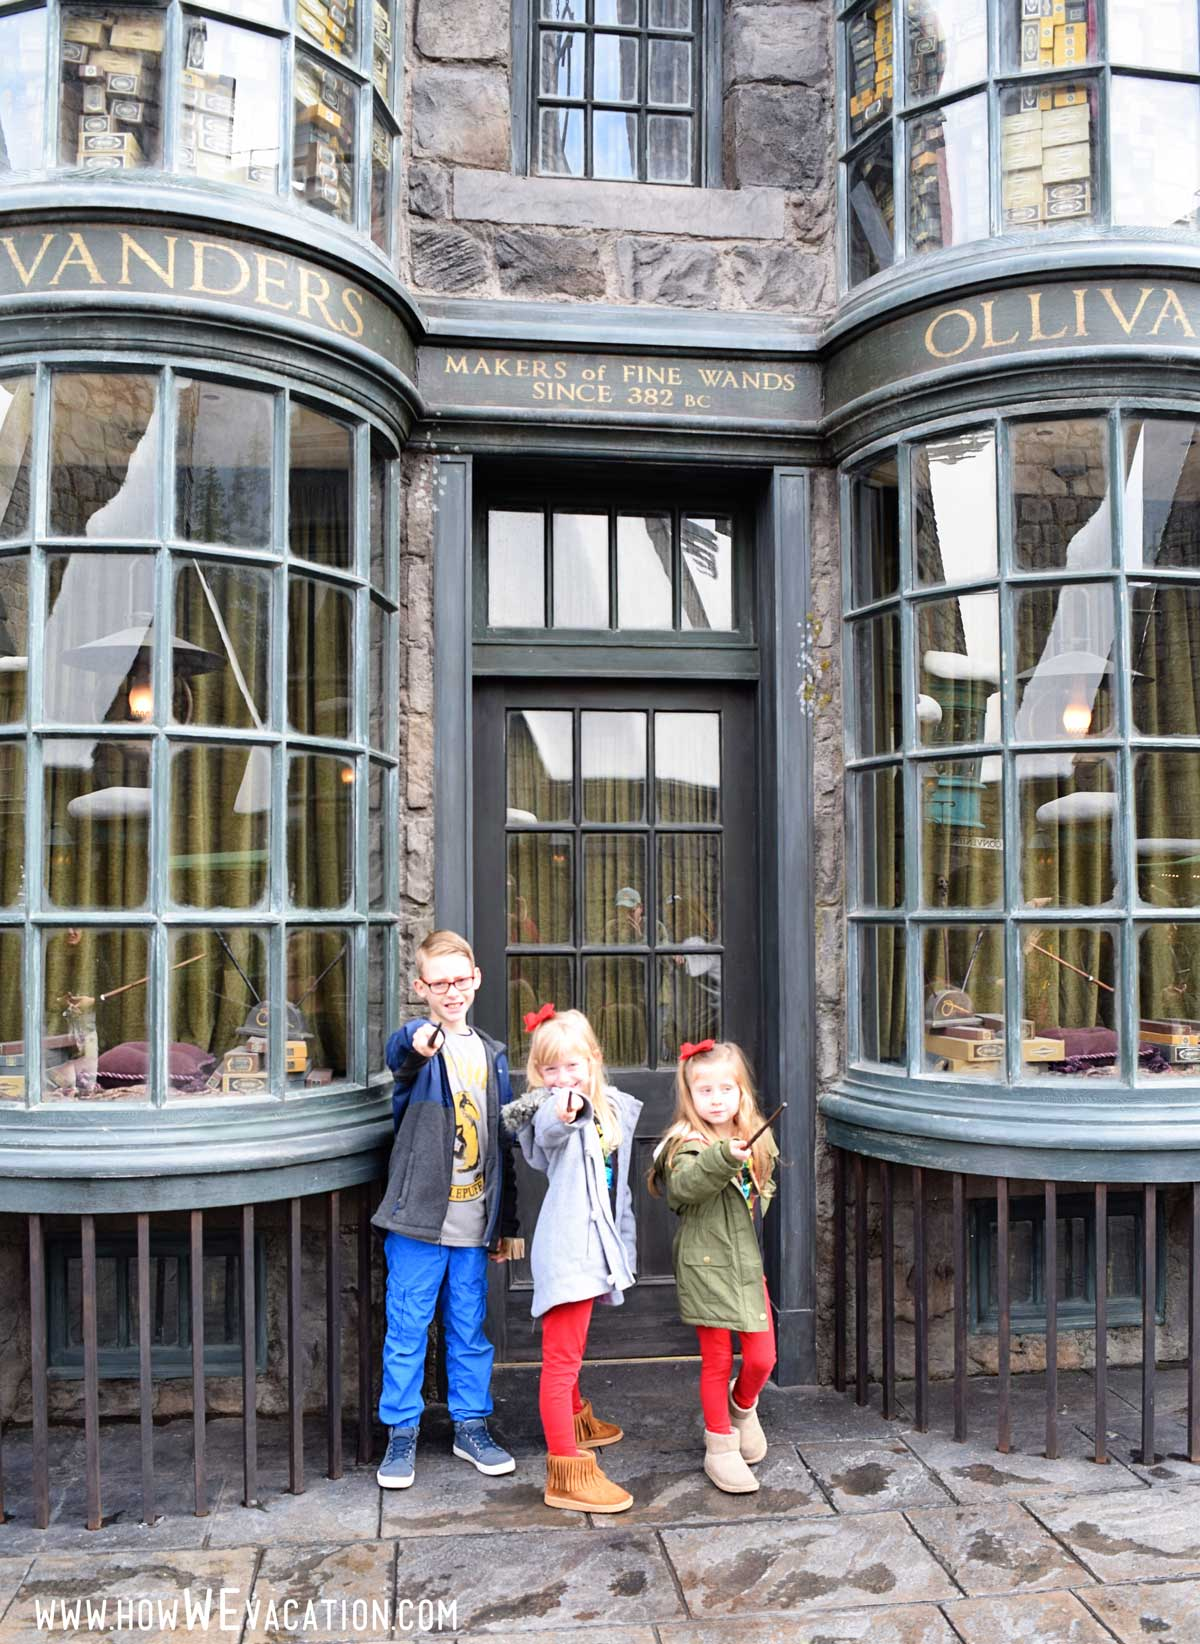 Wands at ollivanders Hollywood